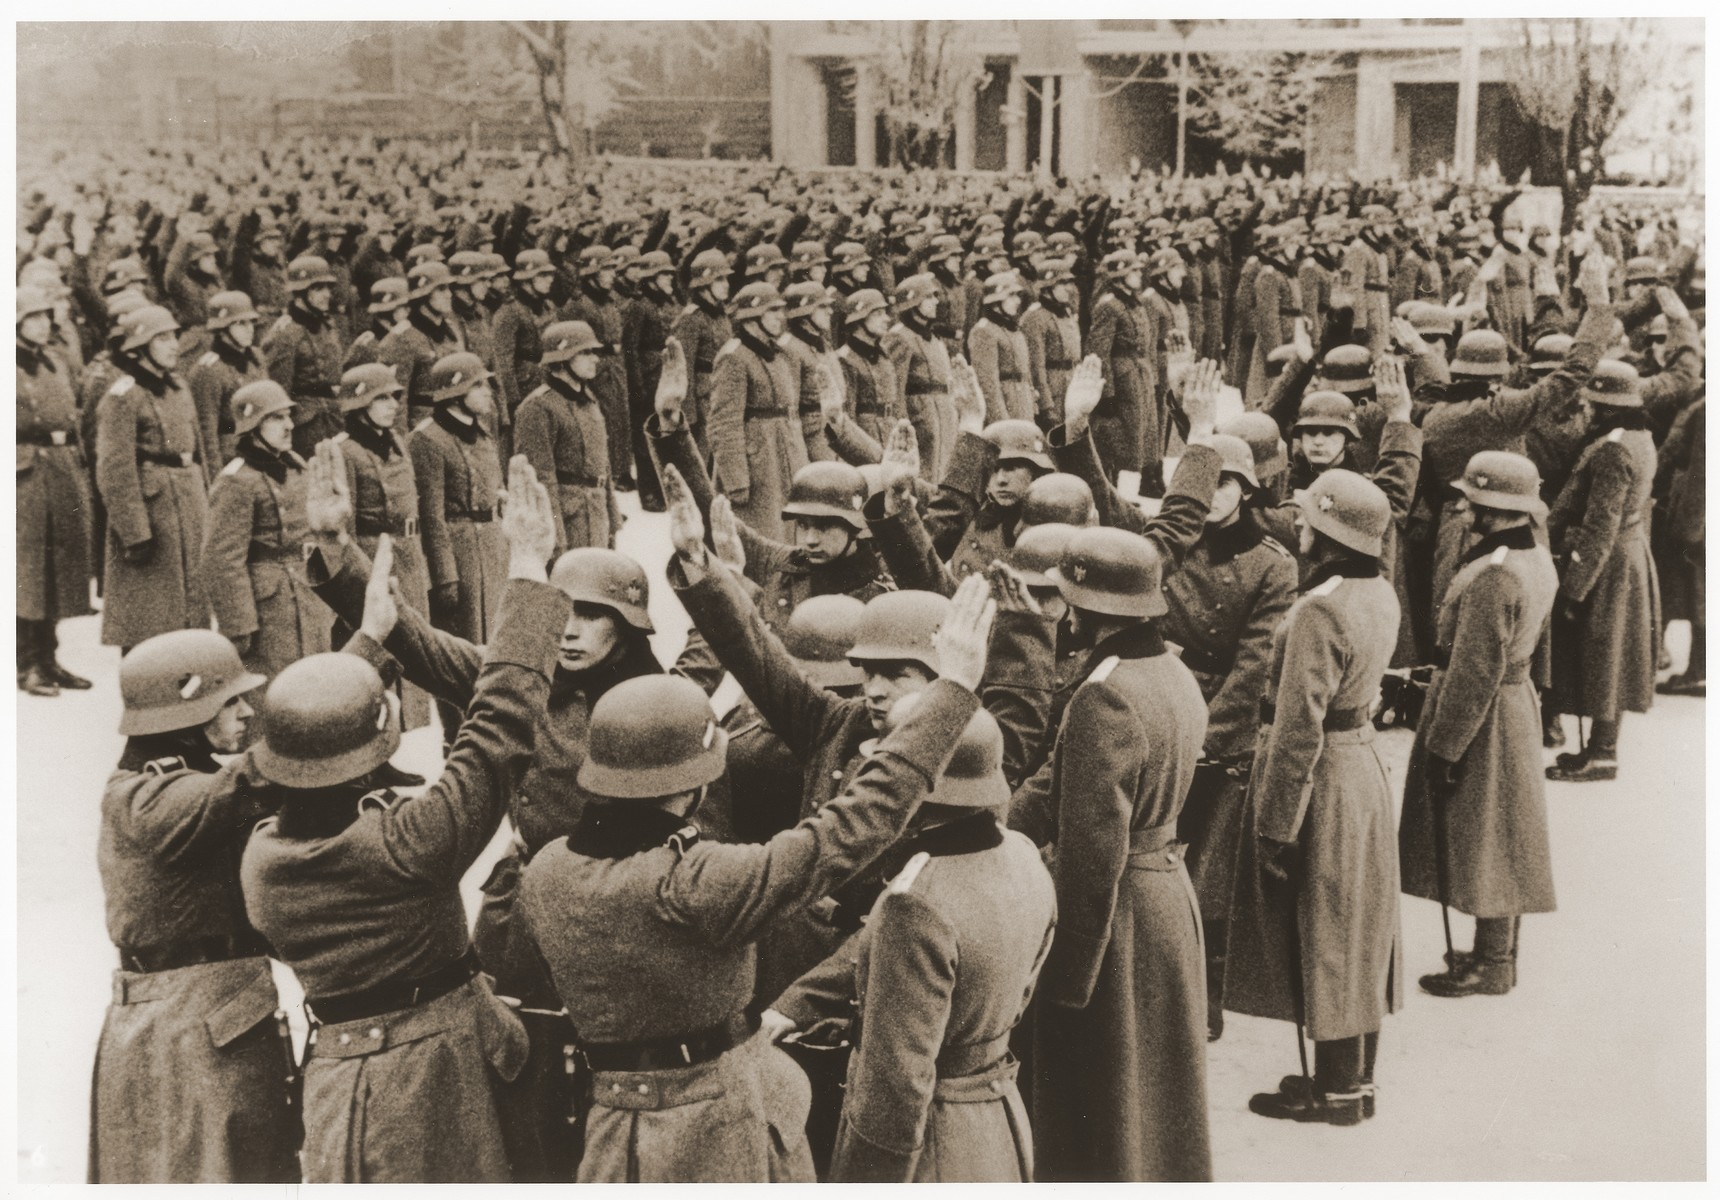 Ethnic German recruits to the German Army from Posen swear allegiance to the Fuehrer.